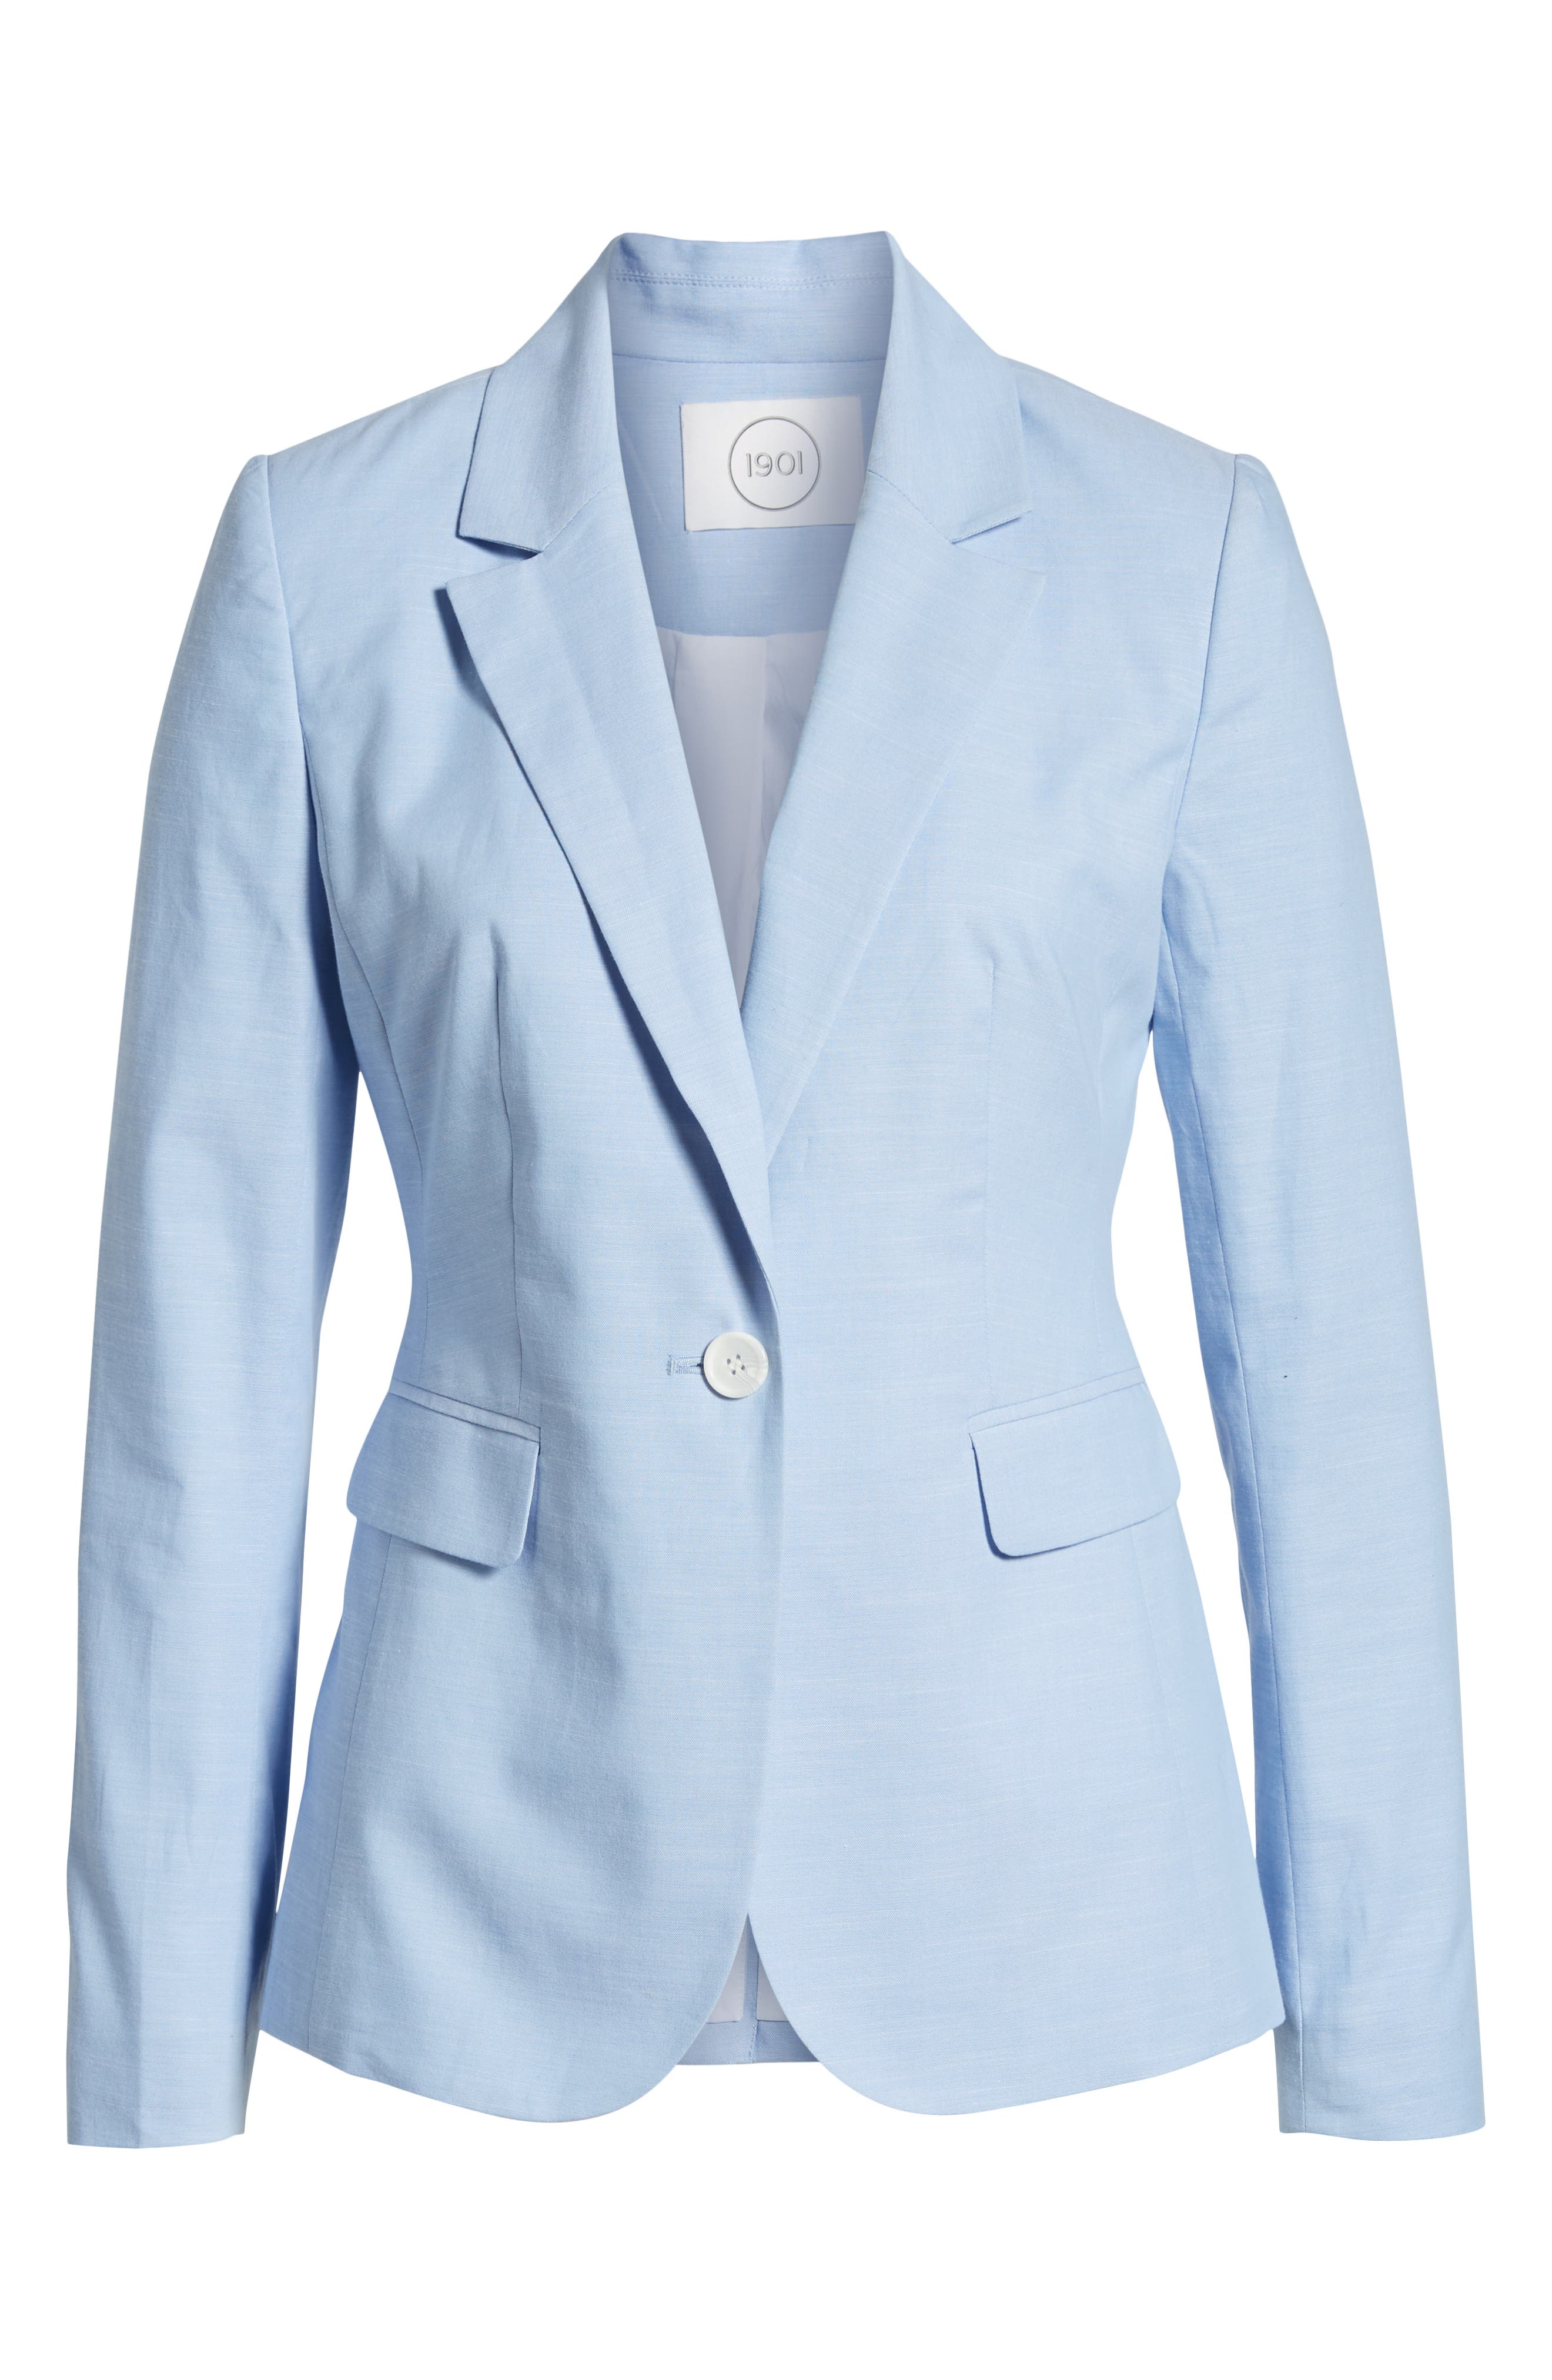 Cotton Chambray Blazer,                             Alternate thumbnail 5, color,                             CHAMBRAY